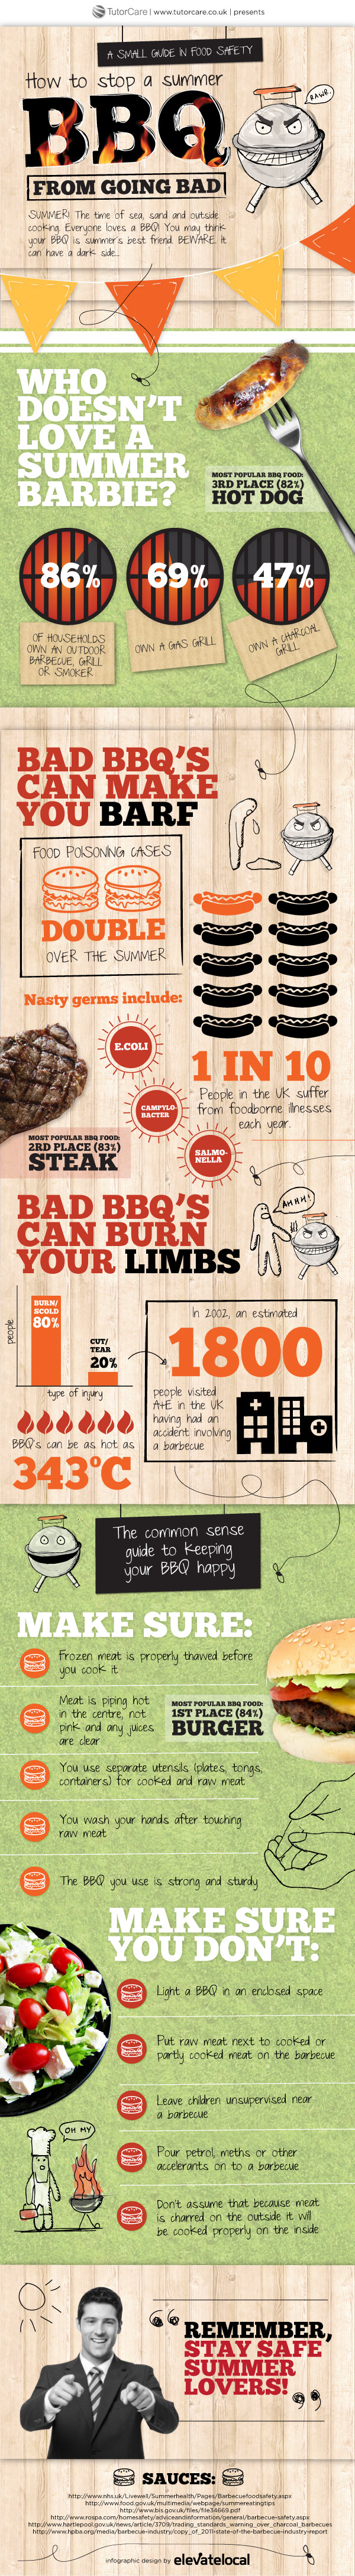 How To Stop A Summer BBQ From Going Bad